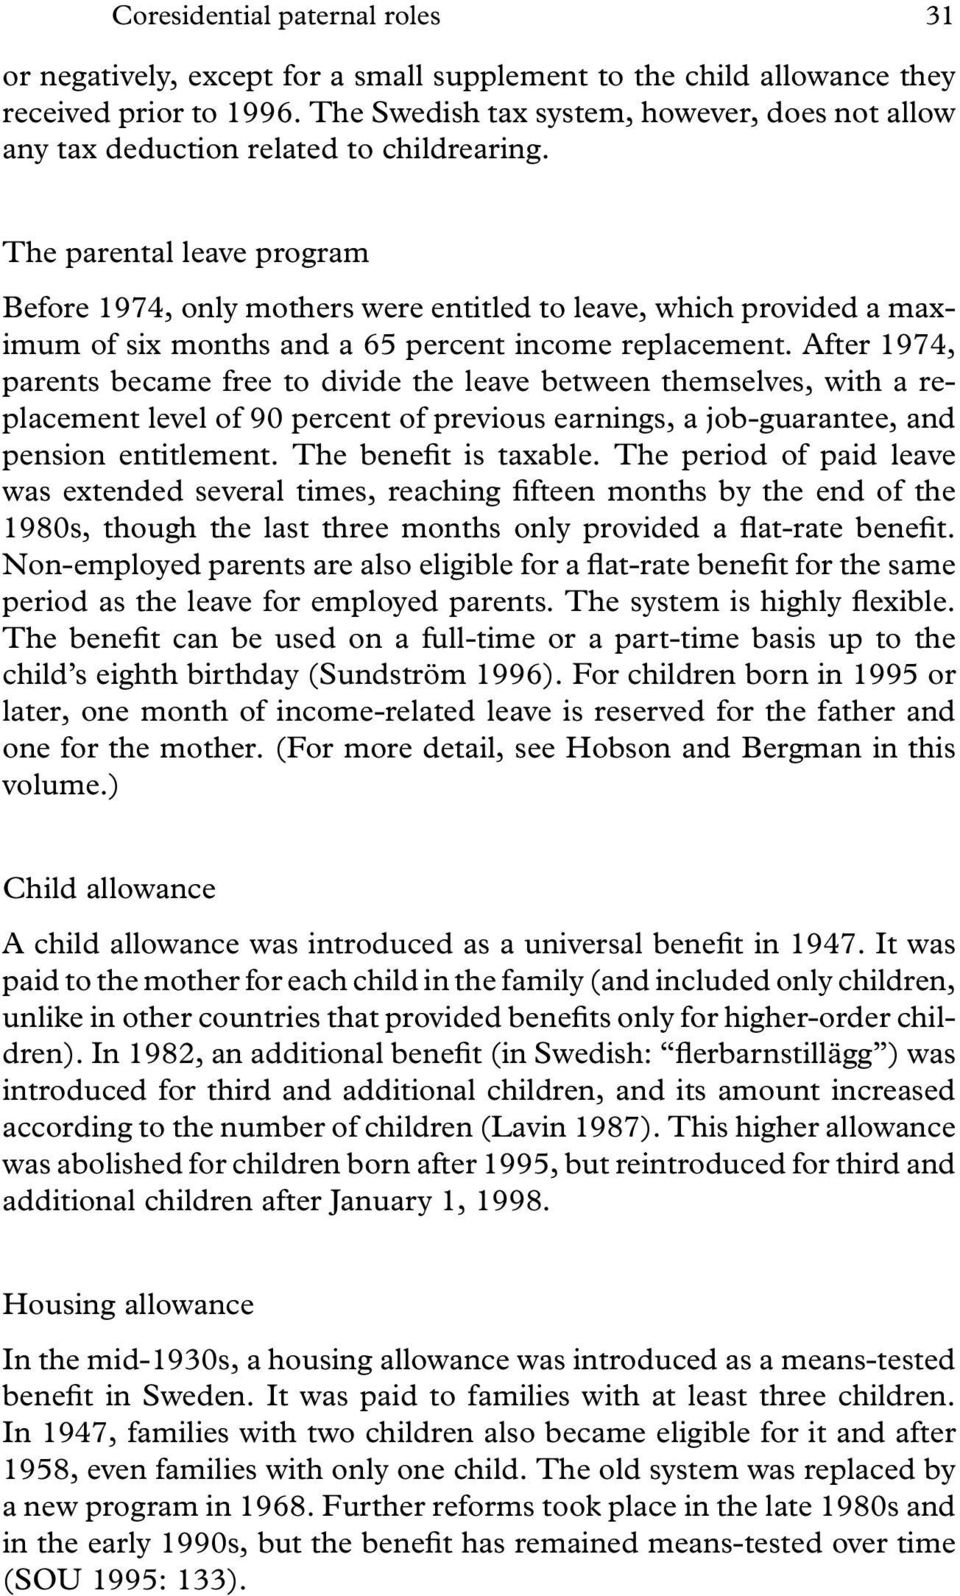 The parental leave program Before 1974, only mothers were entitled to leave, which provided a maximum of six months and a 65 percent income replacement.